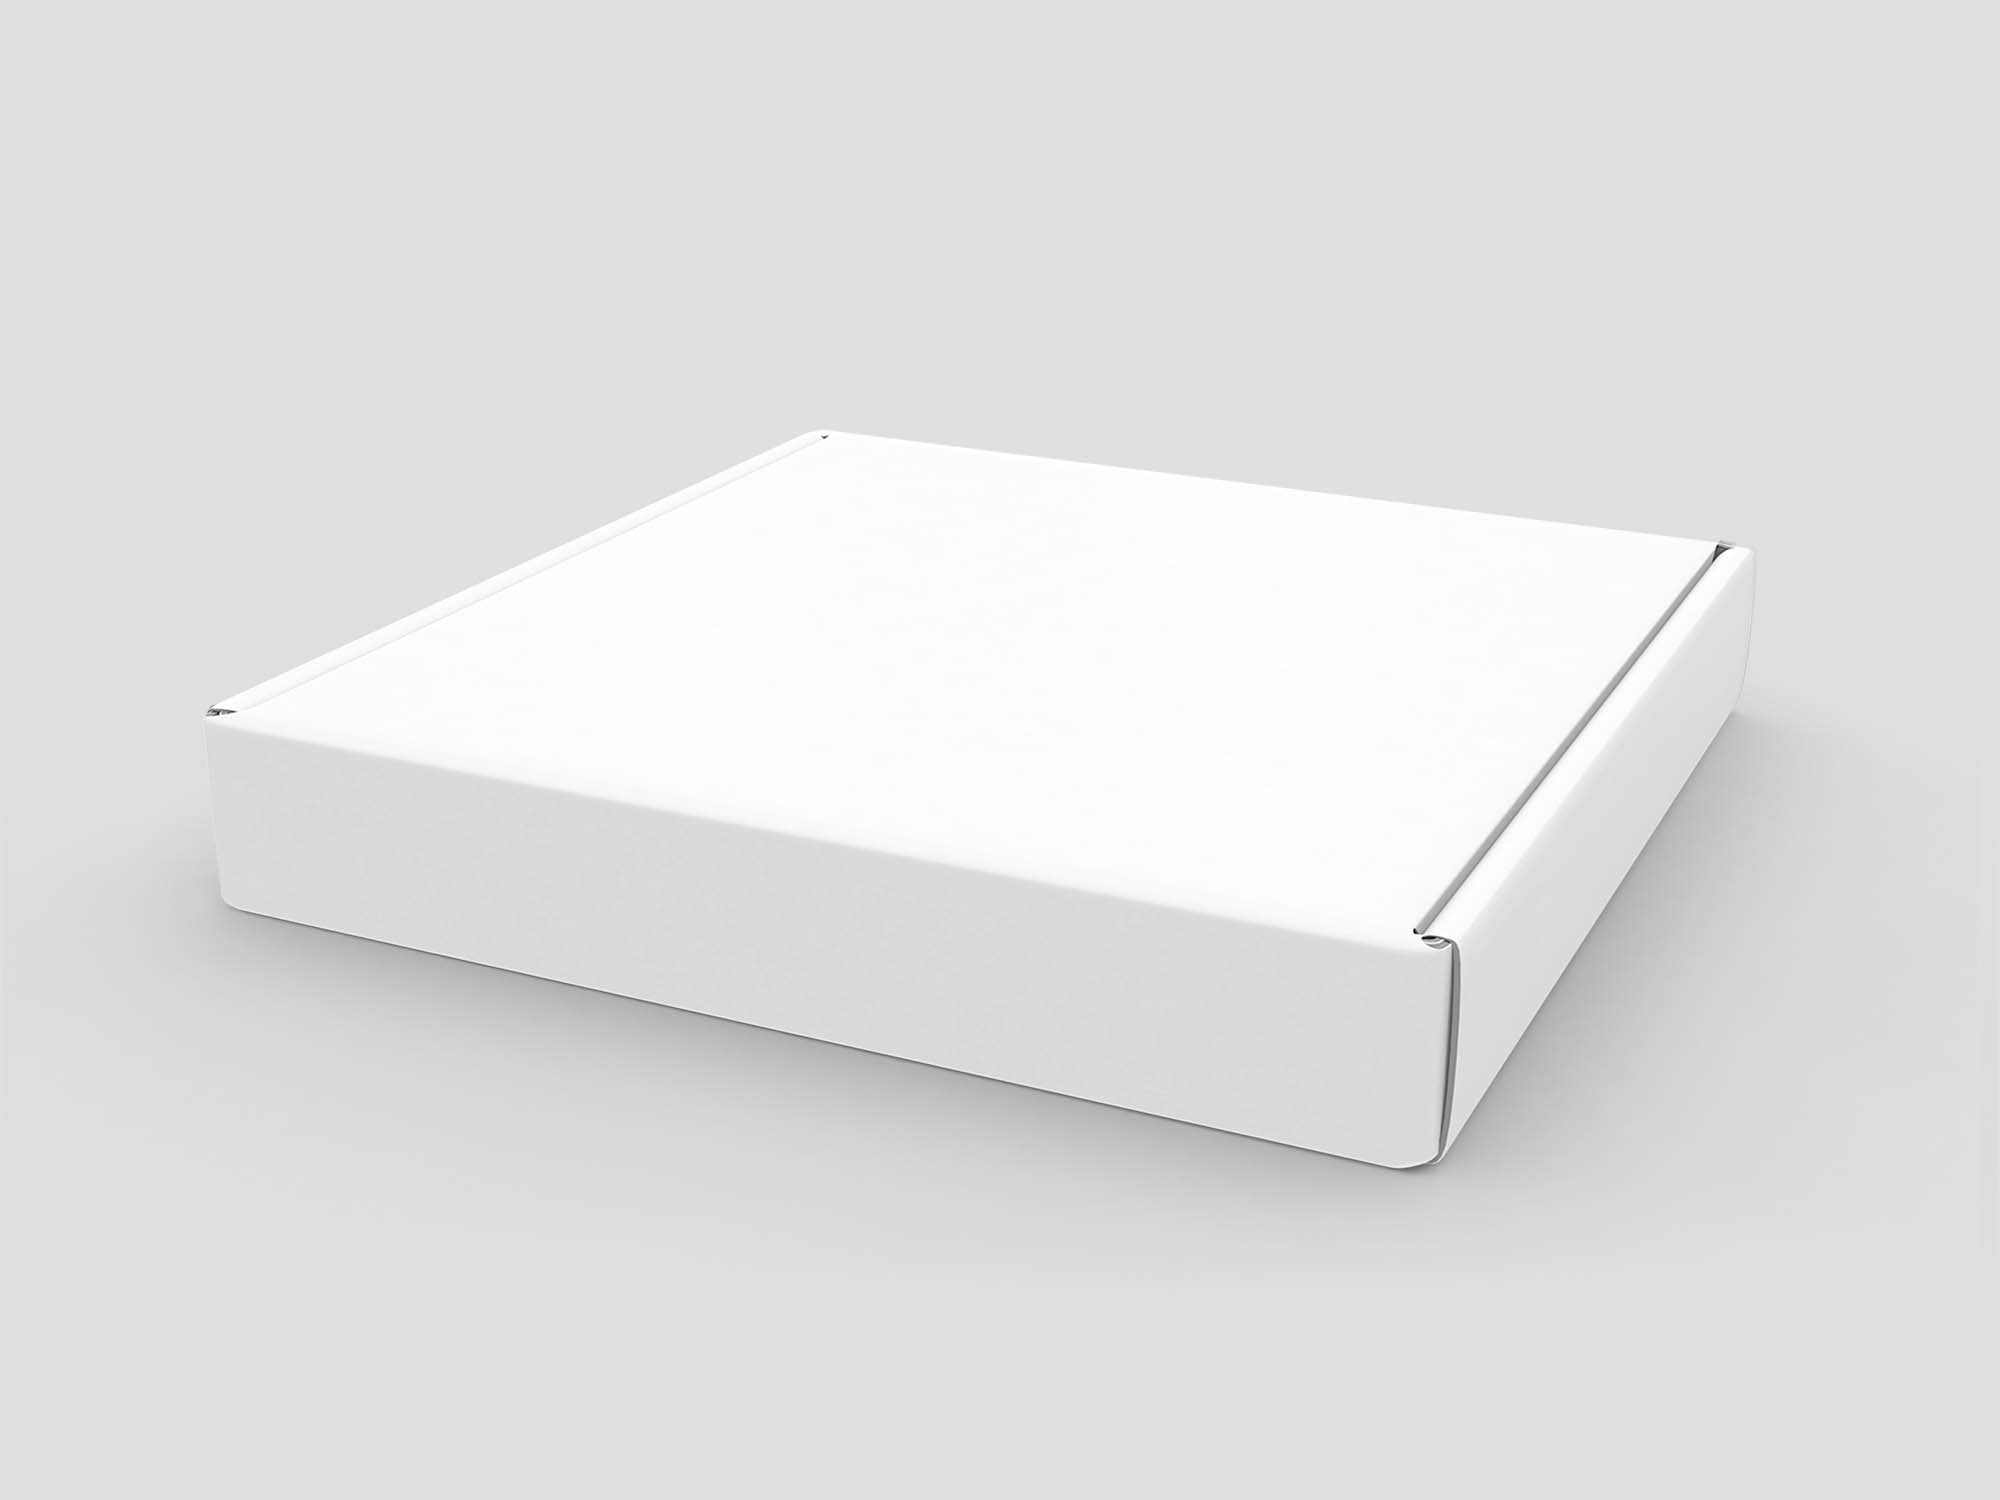 Horizontal Box Cover Mockup PSD